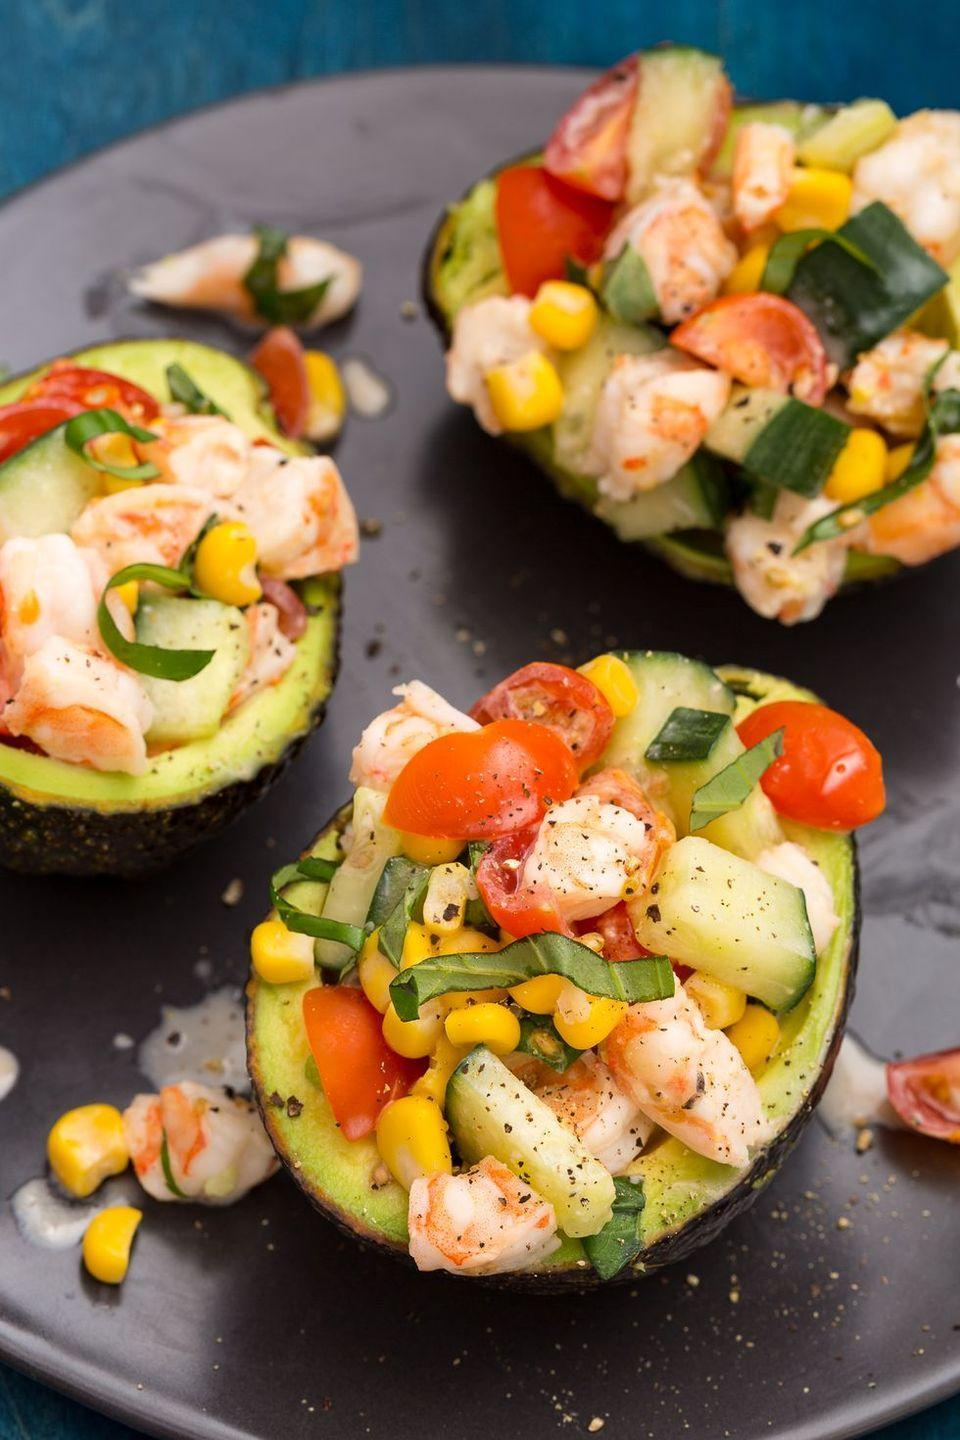 """<p>For a salty punch, top these babies off with crumbled feta. You deserve it.<br><br>Get the recipe from <a href=""""https://www.delish.com/cooking/recipe-ideas/recipes/a47066/shrimp-salad-stuffed-avocado-recipe/"""" rel=""""nofollow noopener"""" target=""""_blank"""" data-ylk=""""slk:Delish"""" class=""""link rapid-noclick-resp"""">Delish</a>.</p>"""